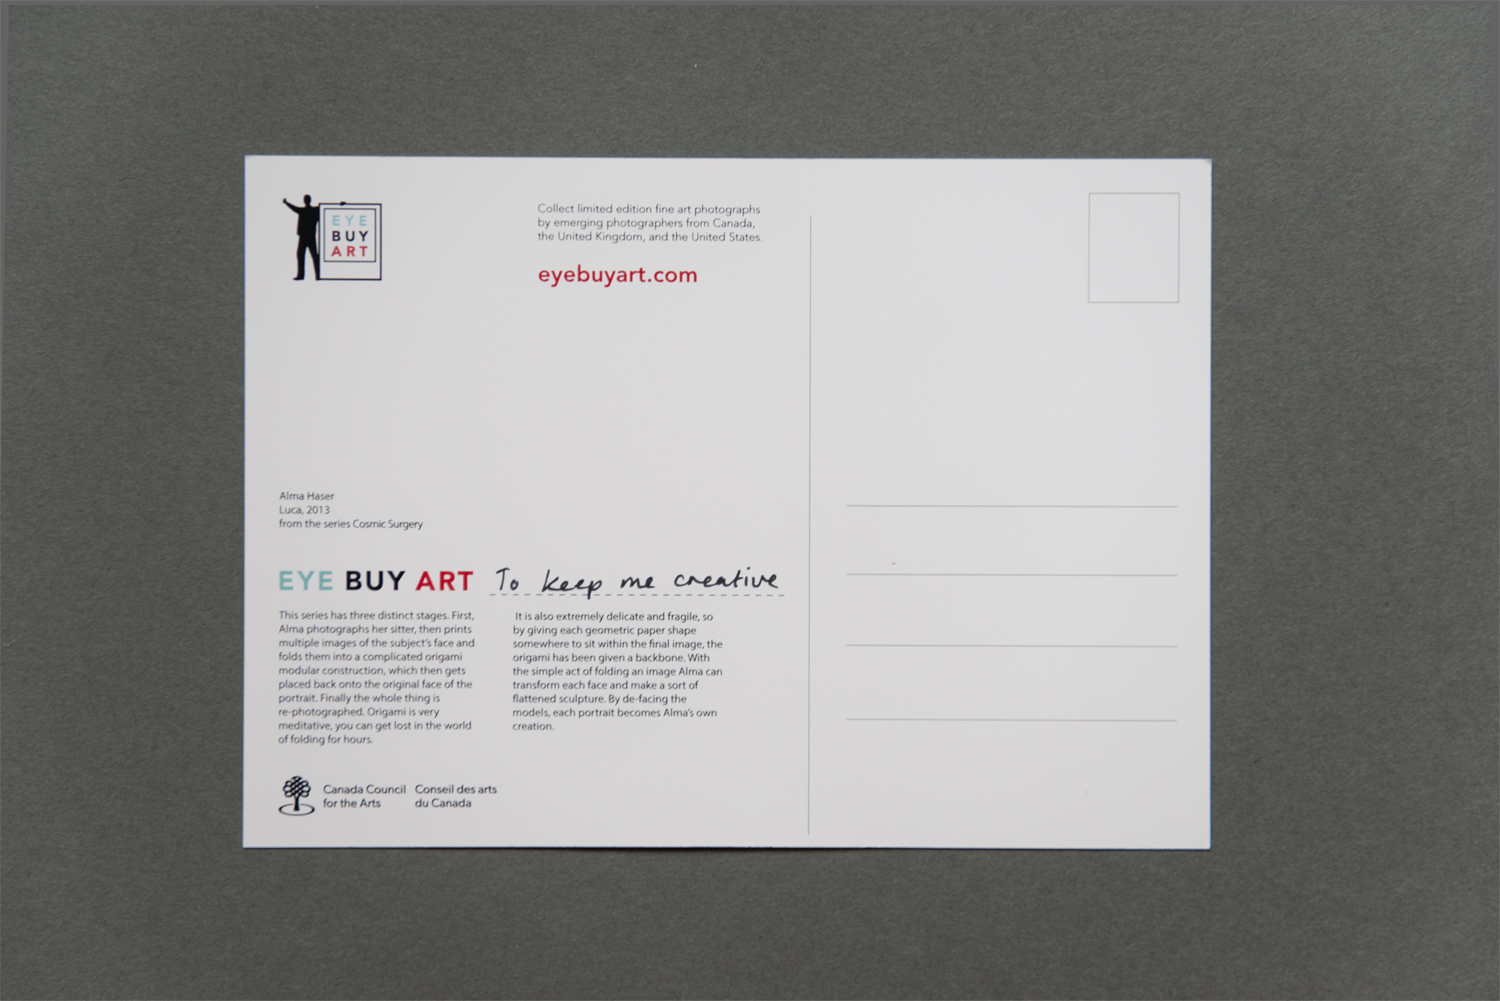 The back of the card is packed with information, yet remains uncluttered, leaving plenty of space for a short message and address. Eye Buy Art's name, logo, and web address are prominently displayed and add a pop of color to the minimal white palate. In addition to listing the front image credit, the card includes a substantial write-up about the body of work as a whole. This is something we haven't seen before, and it's a nice touch.